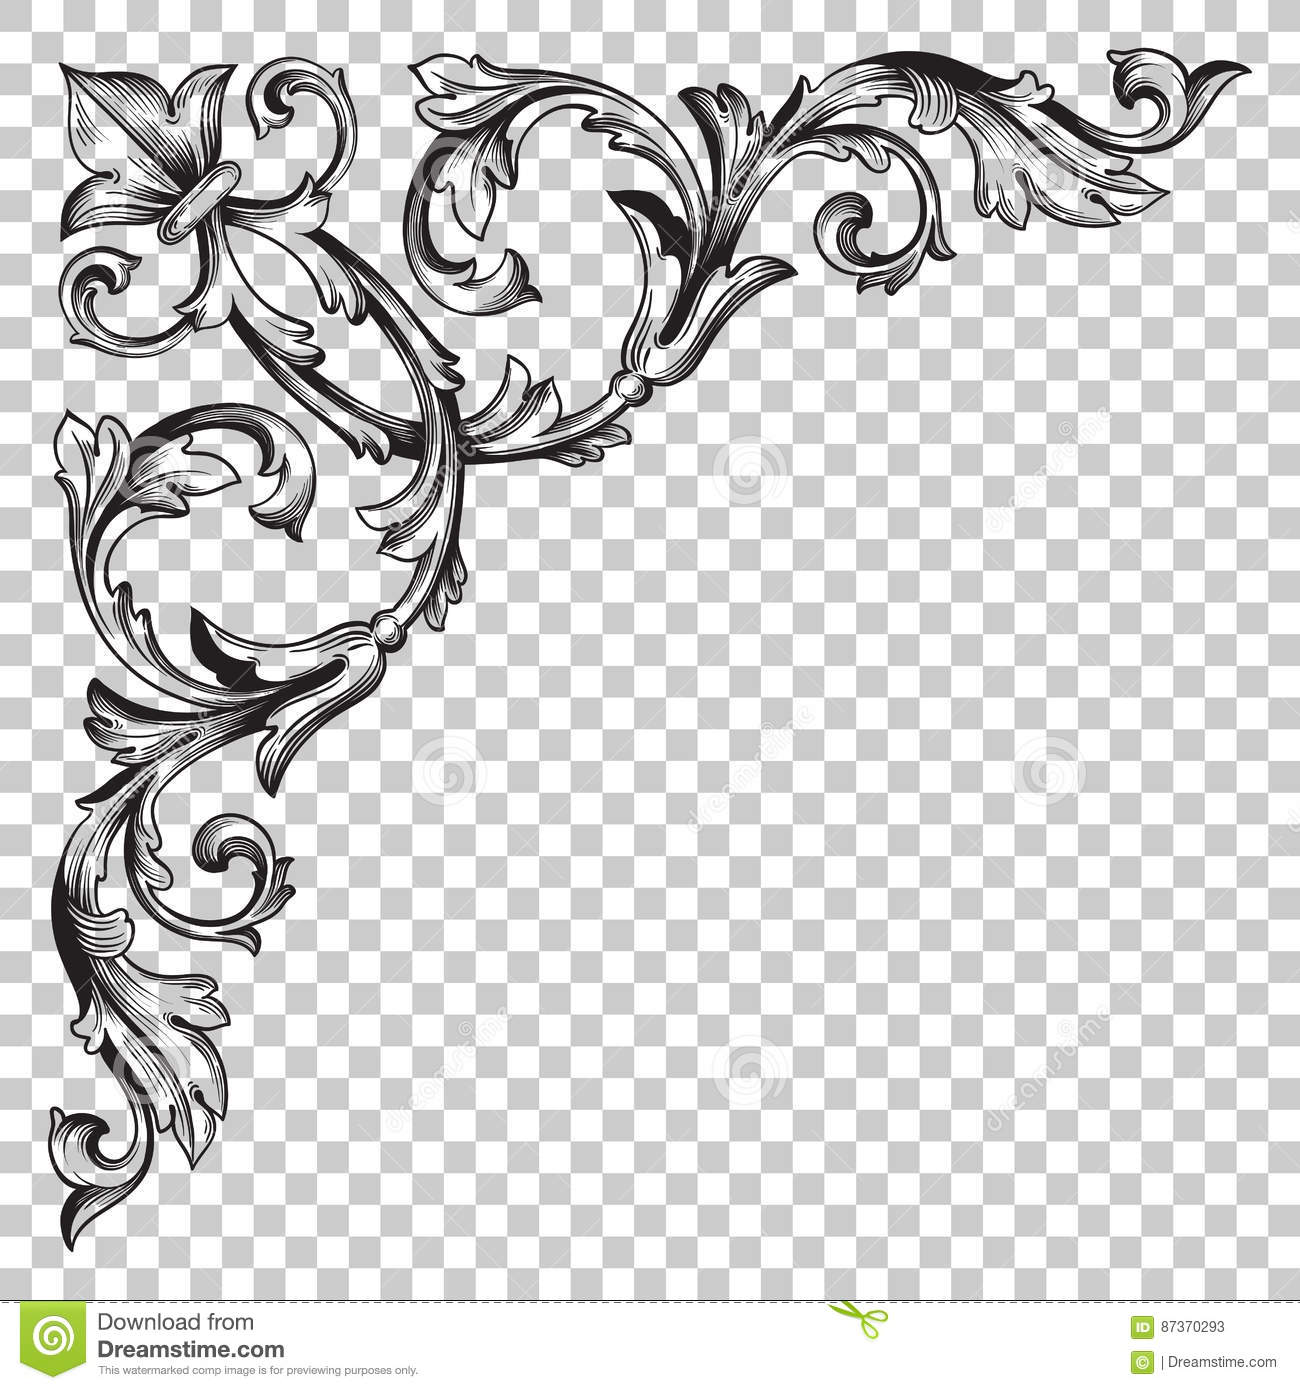 Isolate Corner Ornament In Baroque Style Stock Vector ... Барокко Орнамент